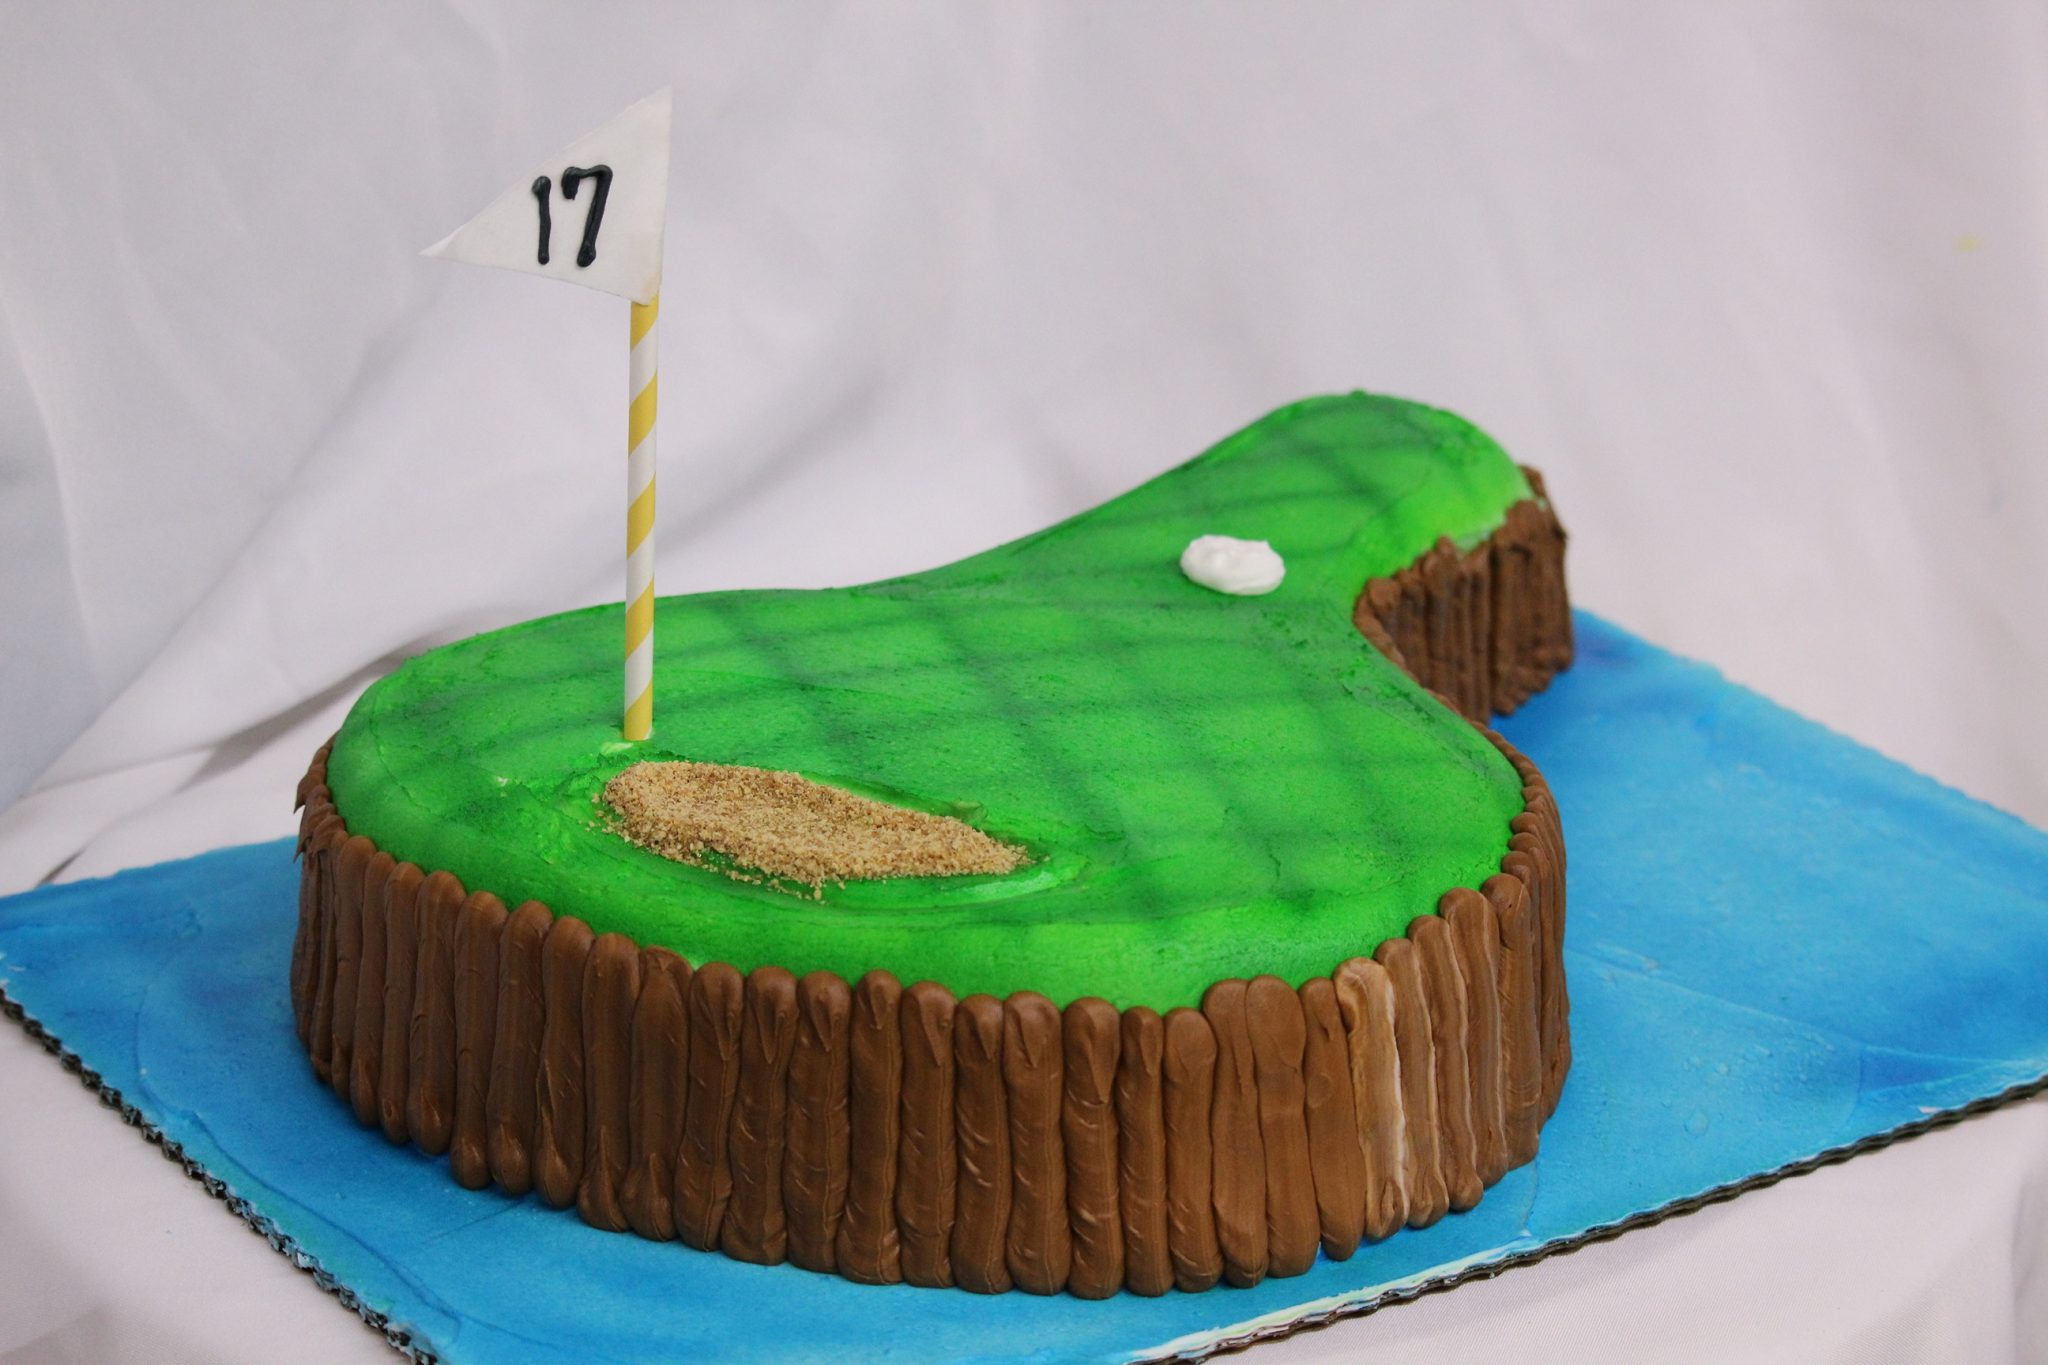 Seventeenth Green, theme, cake, TPC, Sawgrass, 17th, green, birthday, cake, adult, man, male, party, Jacksonville, Ponte, Vedra, Beach